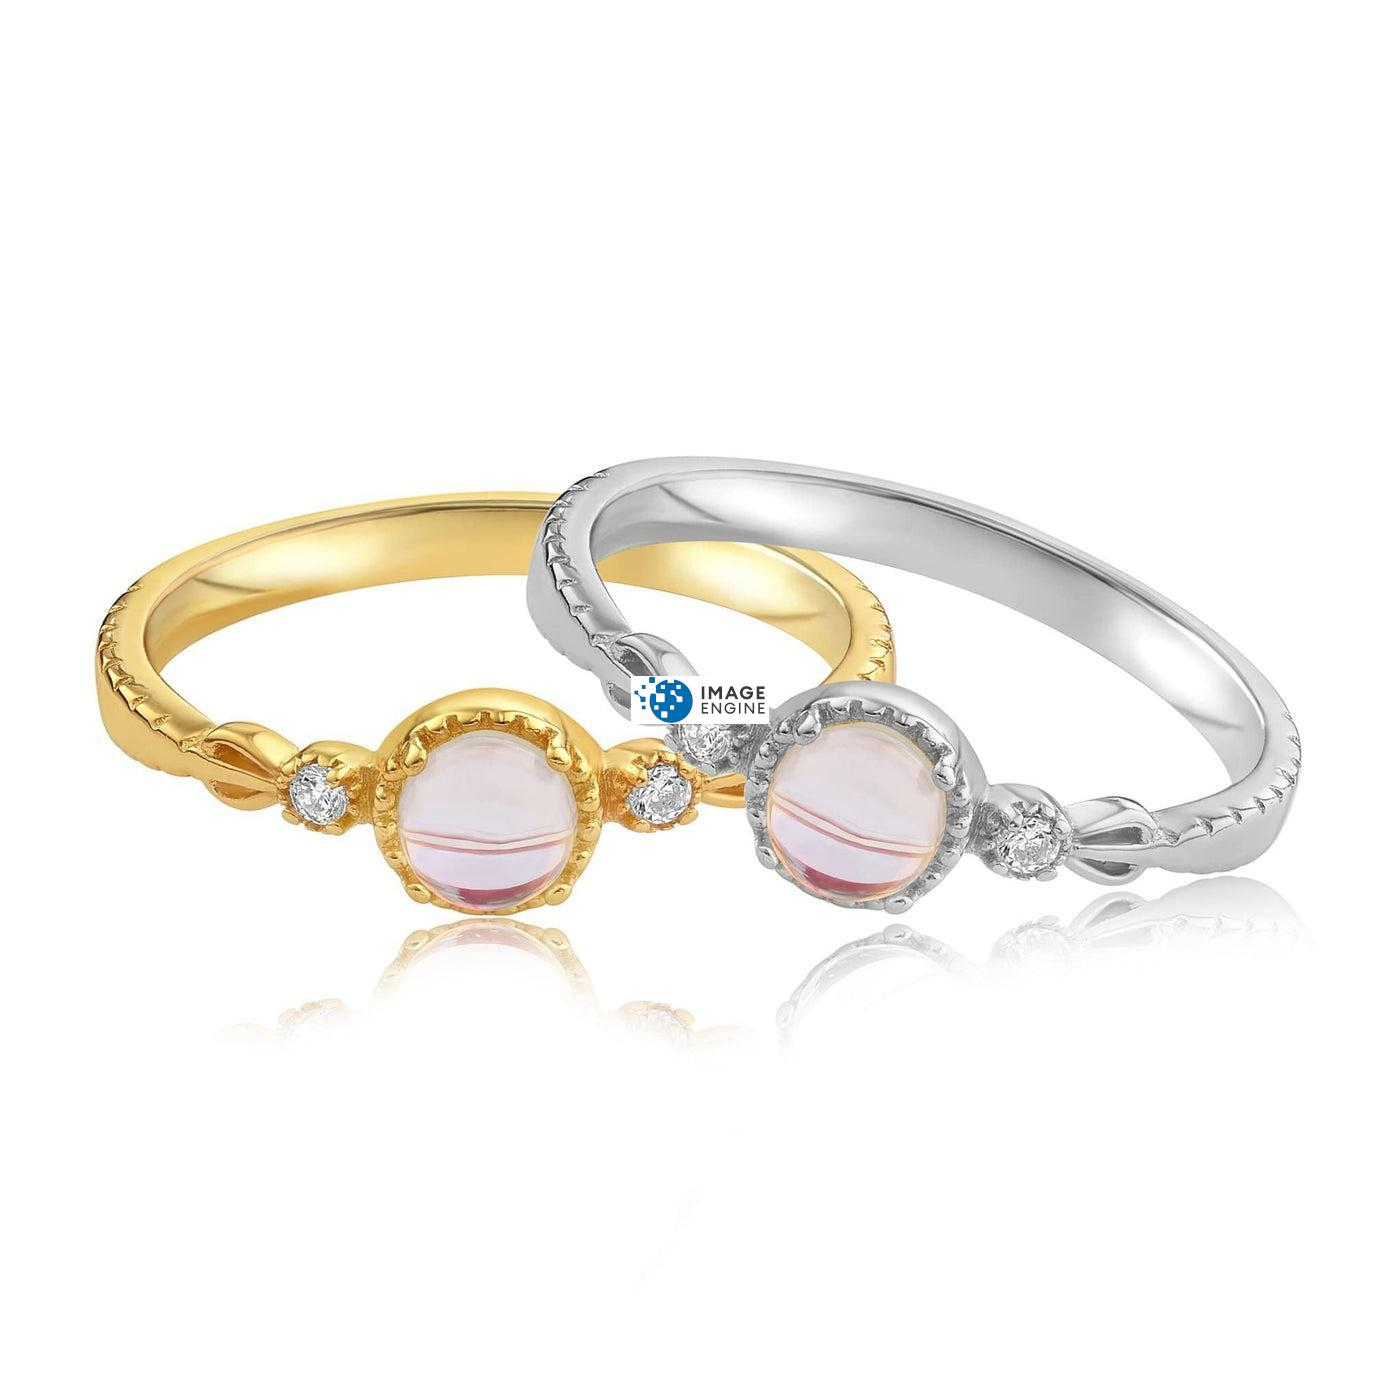 Mystic Moonstone Mood Ring - Front View Side by Side - 18K Yellow Gold Vermeil and 925 Sterling Silver